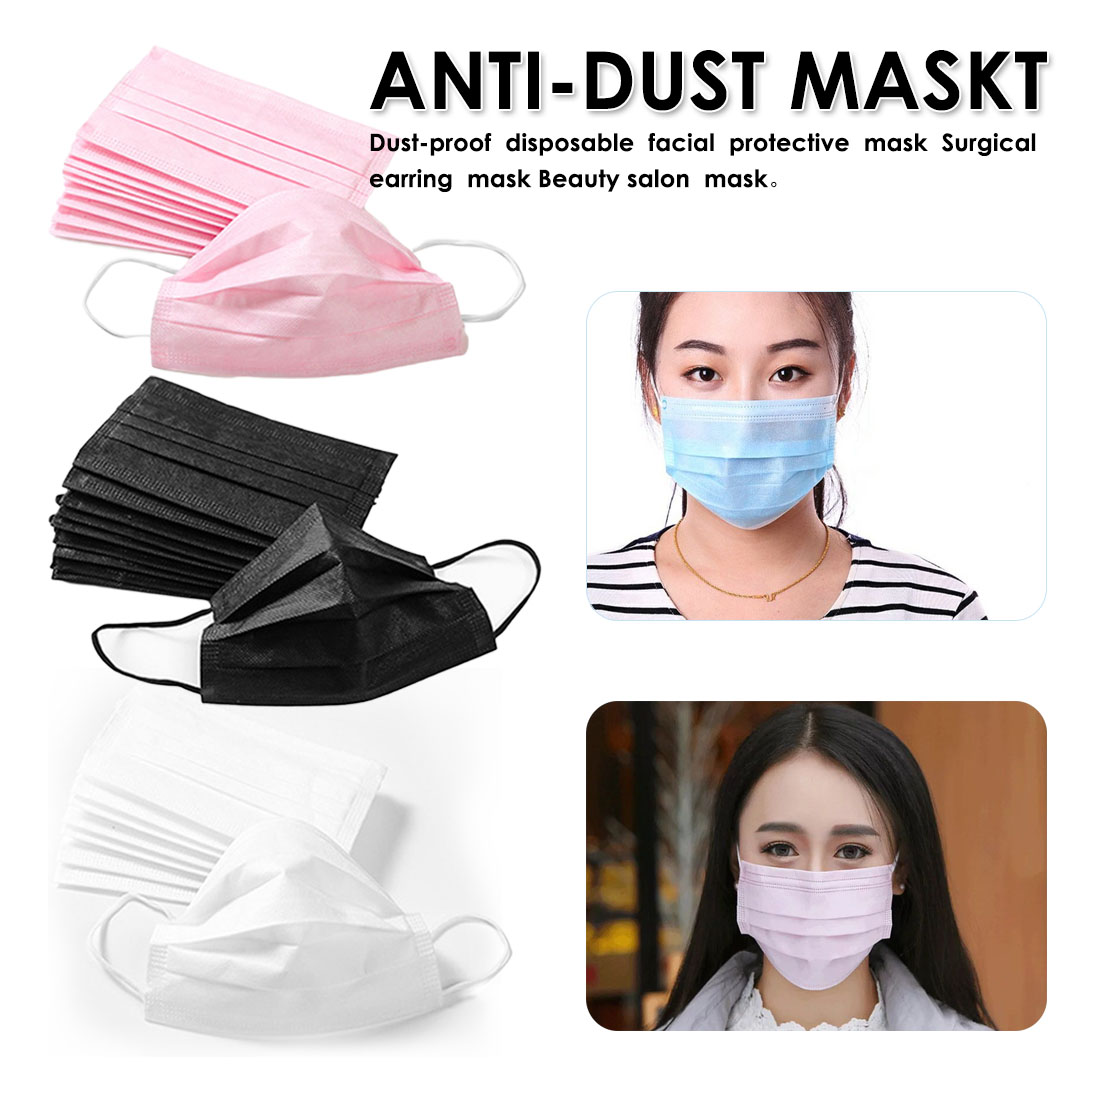 20Pcs 3 Layers Dustproof Facial Protective Cover Masks Anti-Dust Disposable Surgical Medical Salon Earloop Face Mouth Masks